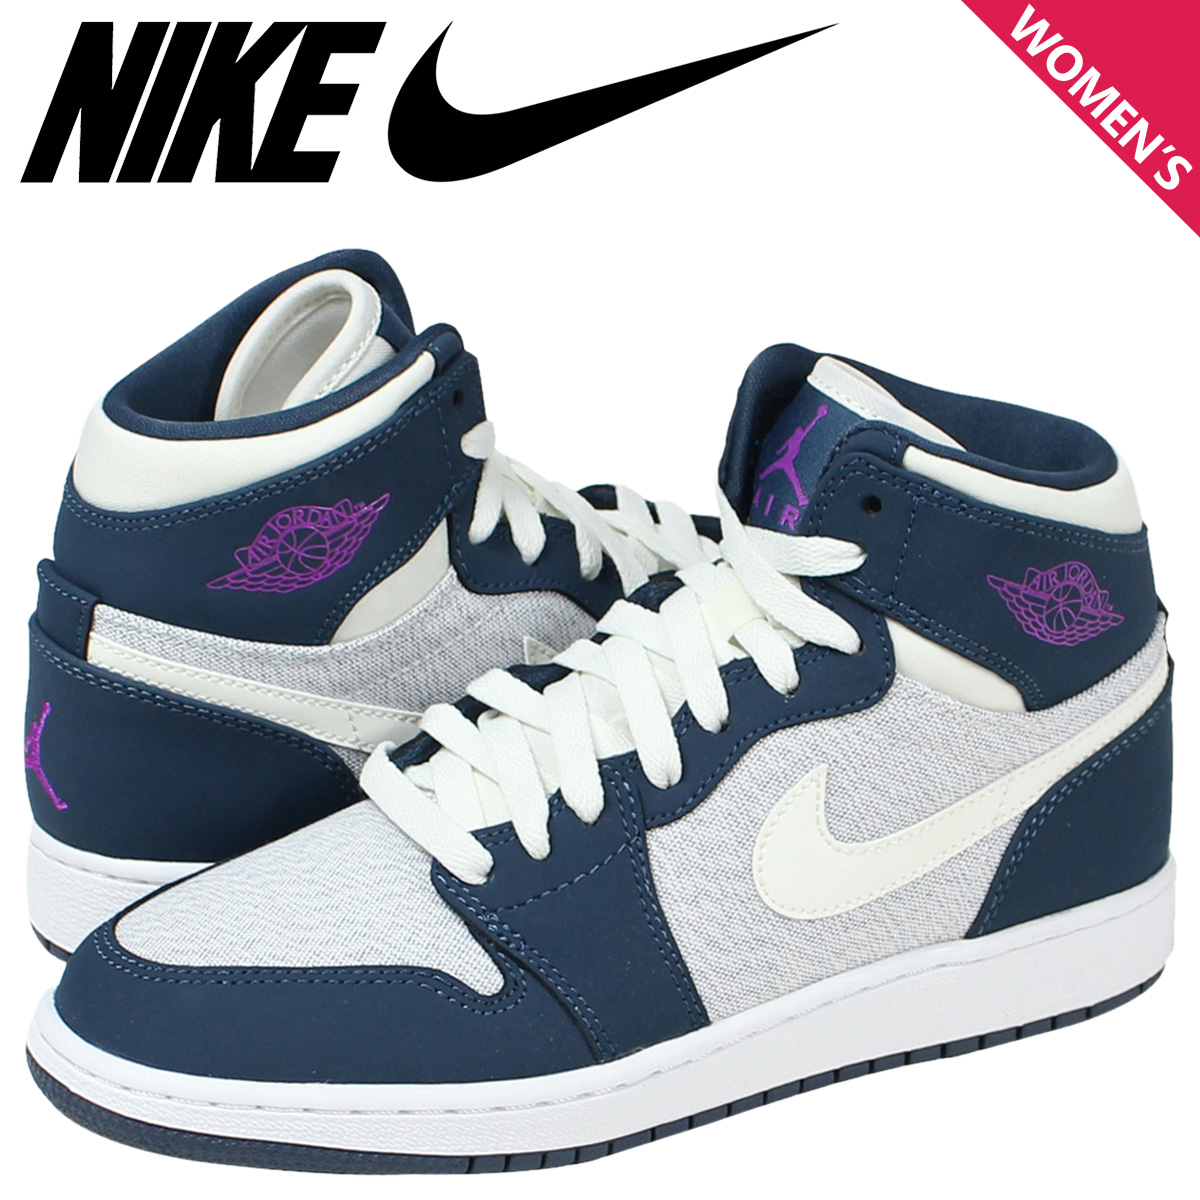 ALLSPORTS   SOLD OUT  Nike NIKE Air Jordan sneakers Womens AIR JORDAN 1  RETRO HI GS Air Jordan 1 retro Hi 332148-117 shoes Navy  2040cfff4